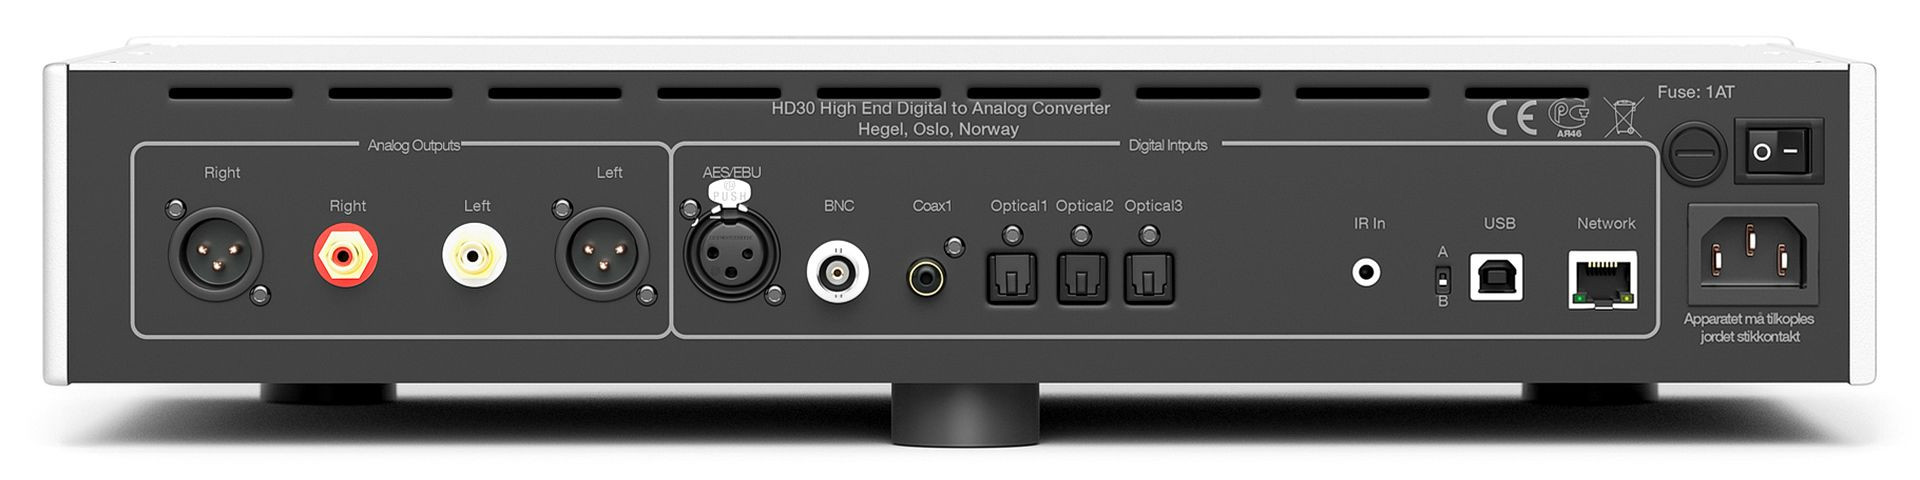 HD30 Power Amplifier Hegel Dealer NJ.jpg